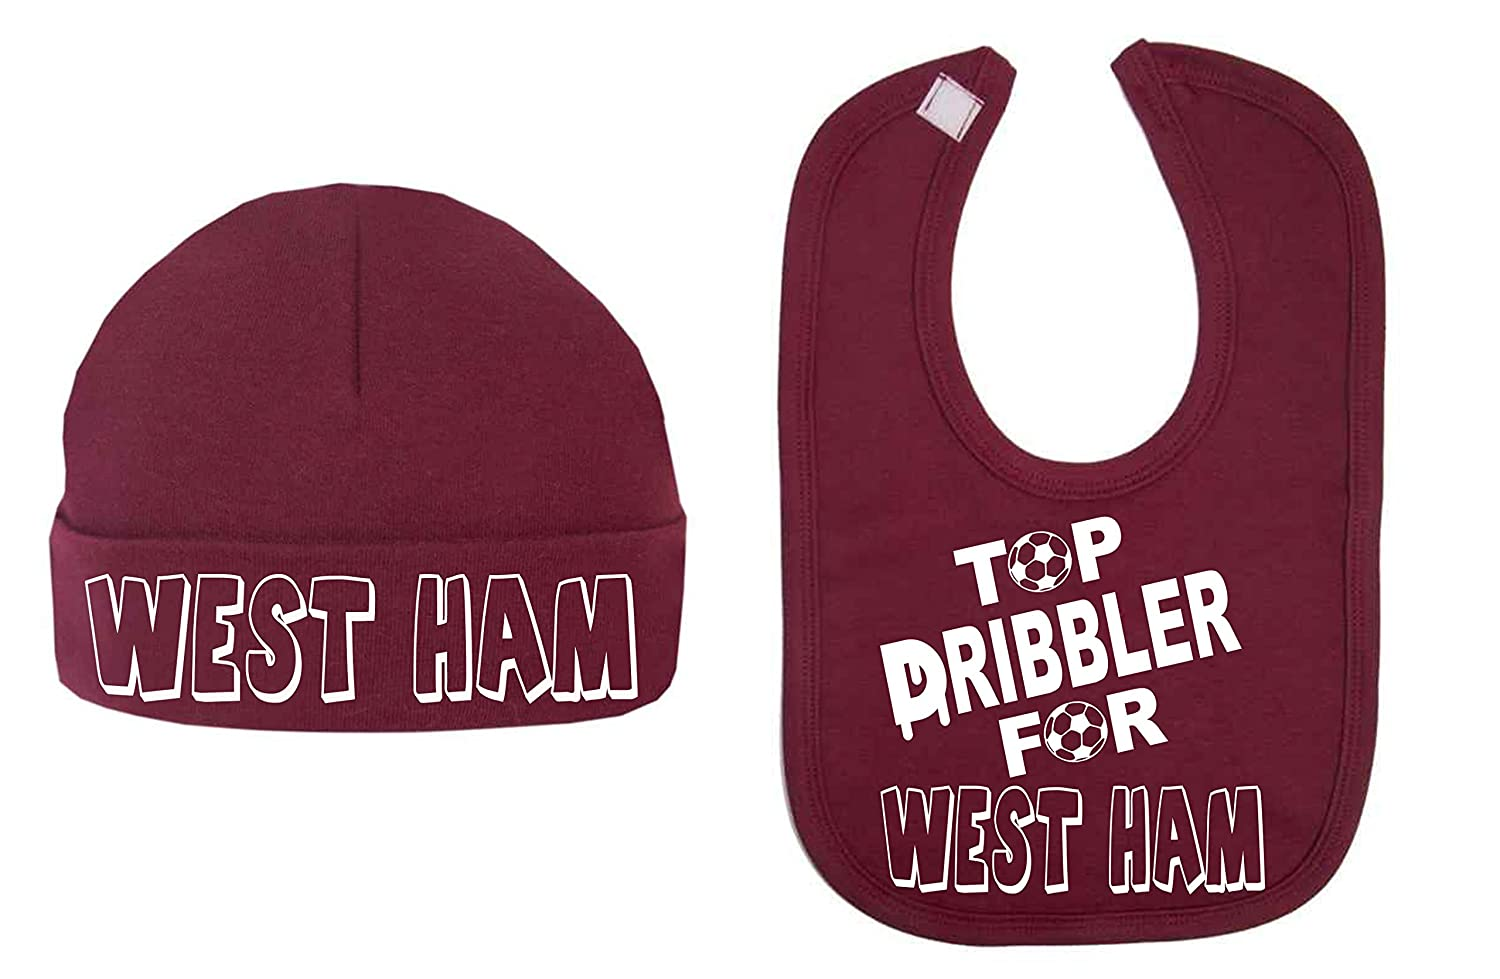 Top Dribbler for West Ham Baby Hat and Bib Set Baby Shower Gifts Football Lovers Baby Football Top (0-3 Months) ICKLE PEANUT